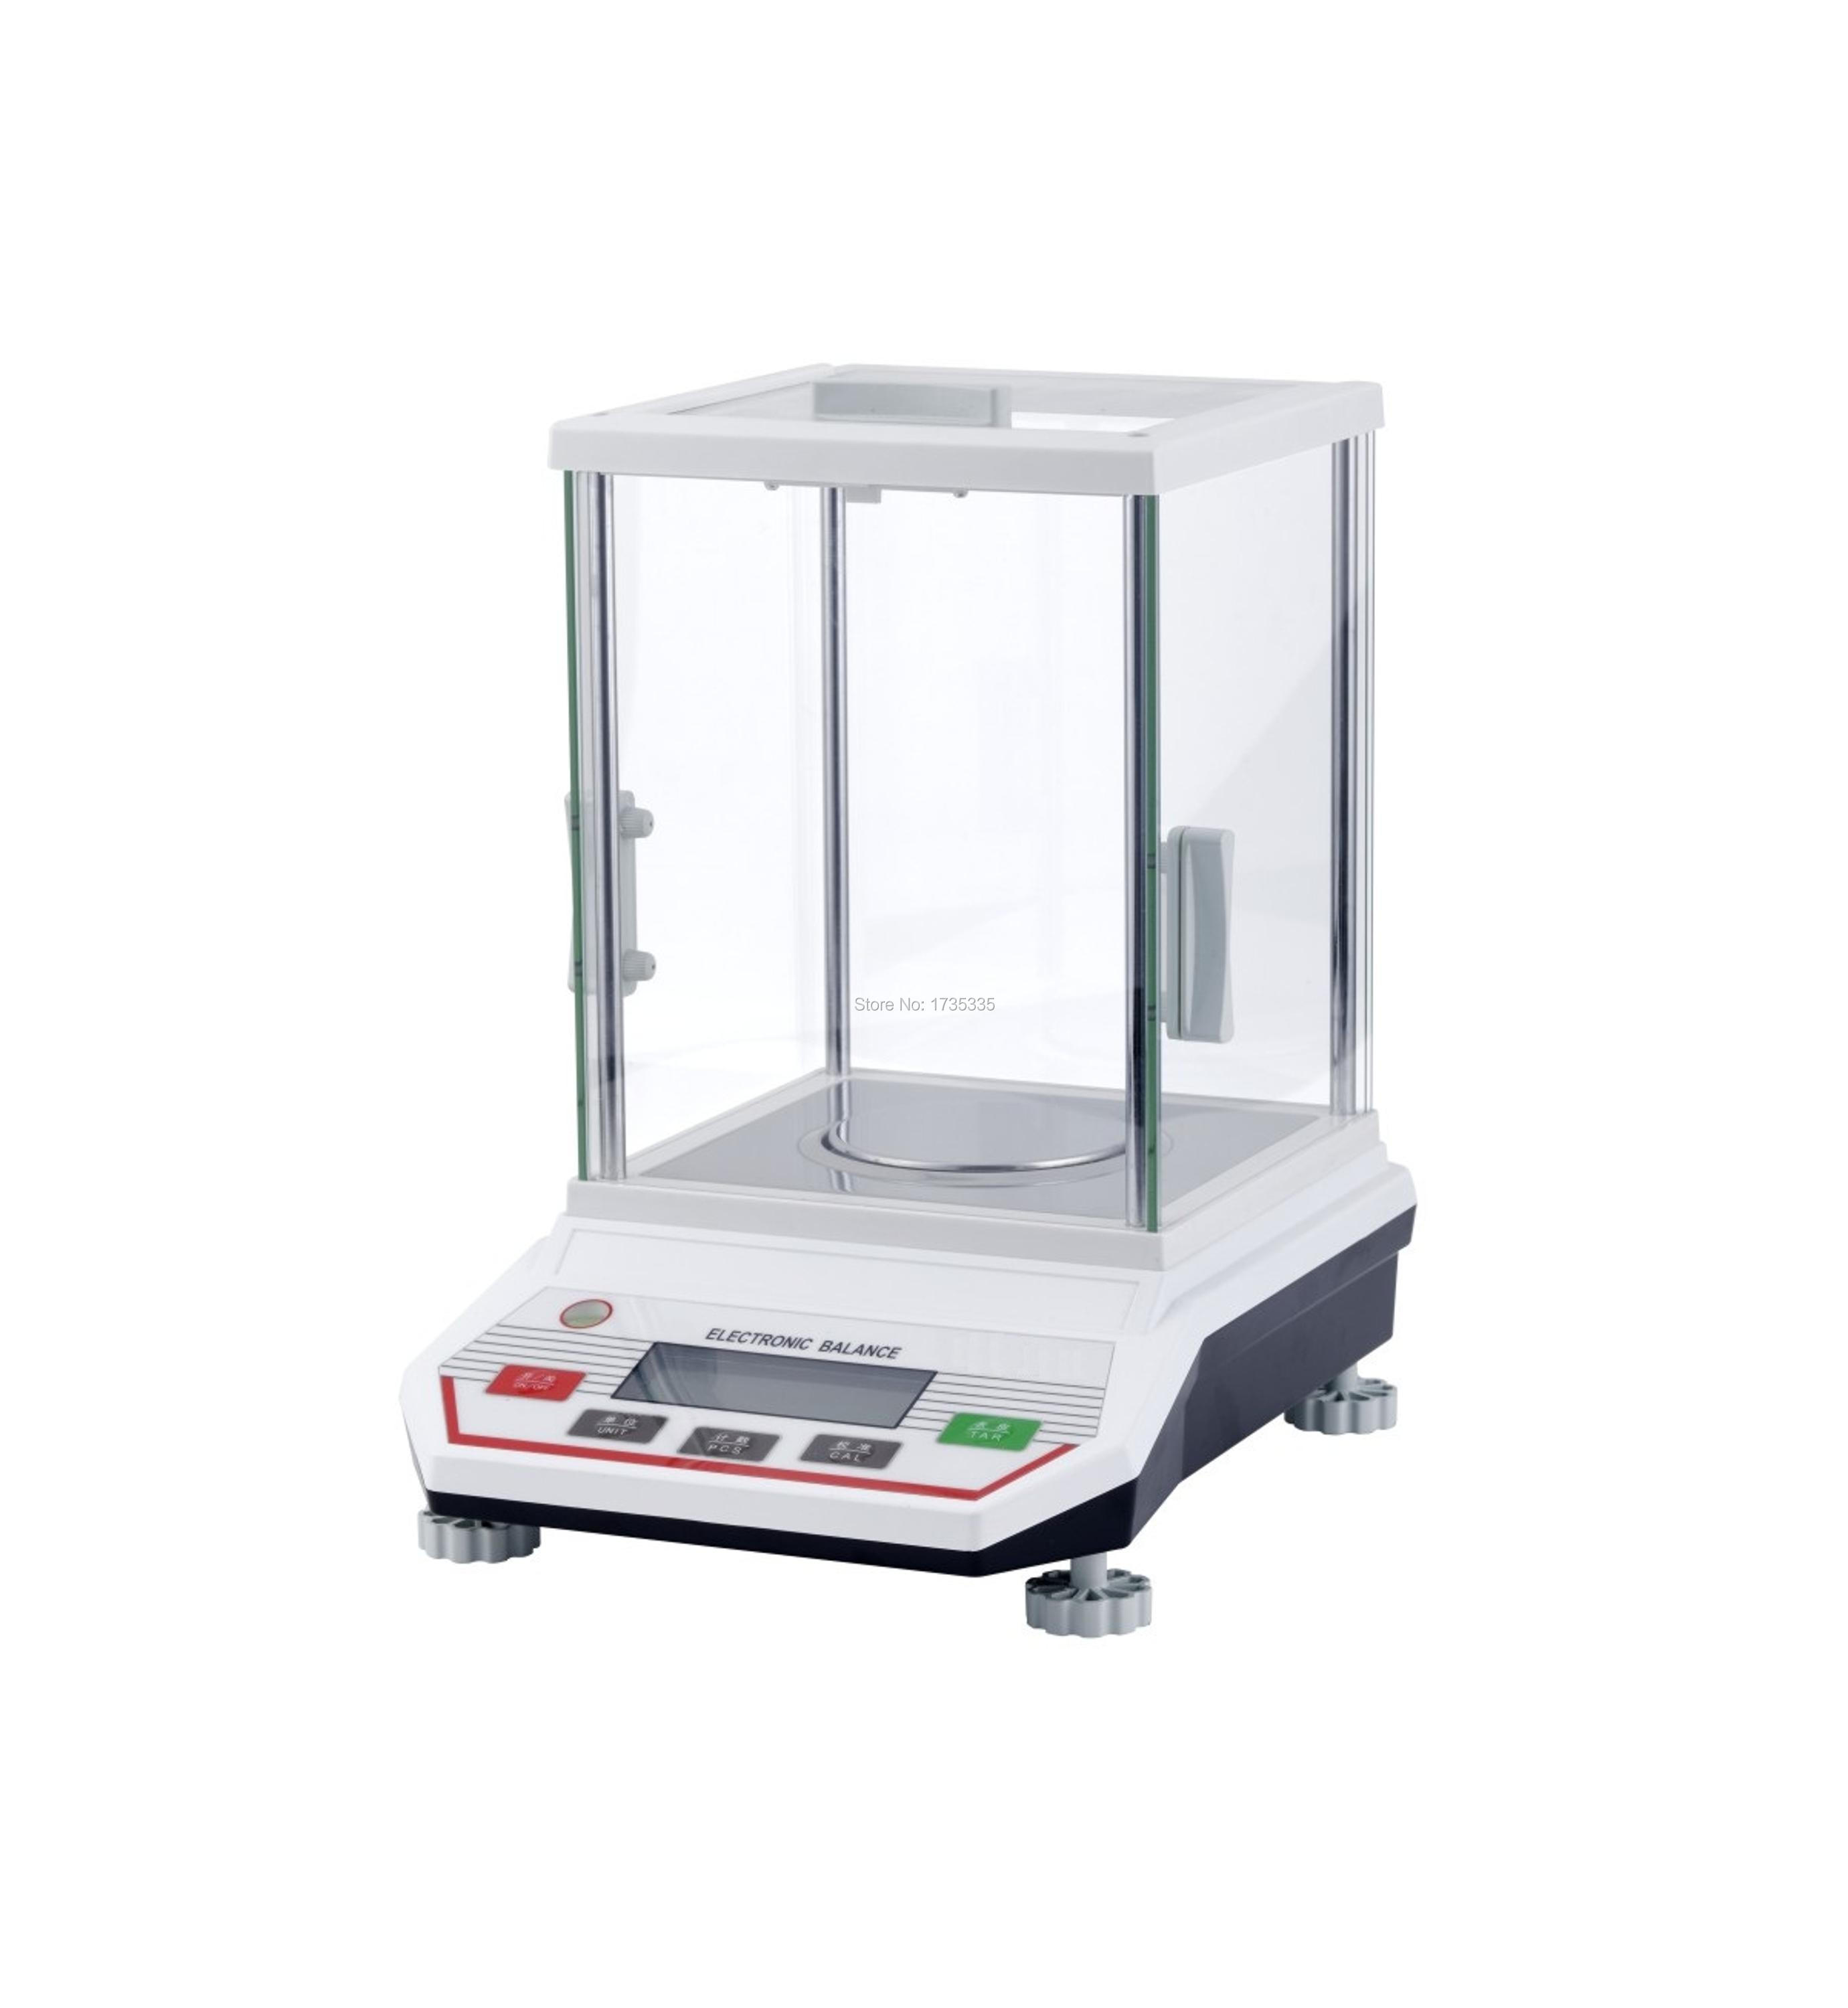 100g x 0.001g Professional lab Digital Balance Scale HC-B1003 with glass cover 800g electronic balance measuring scale with different units counting balance and weight balance